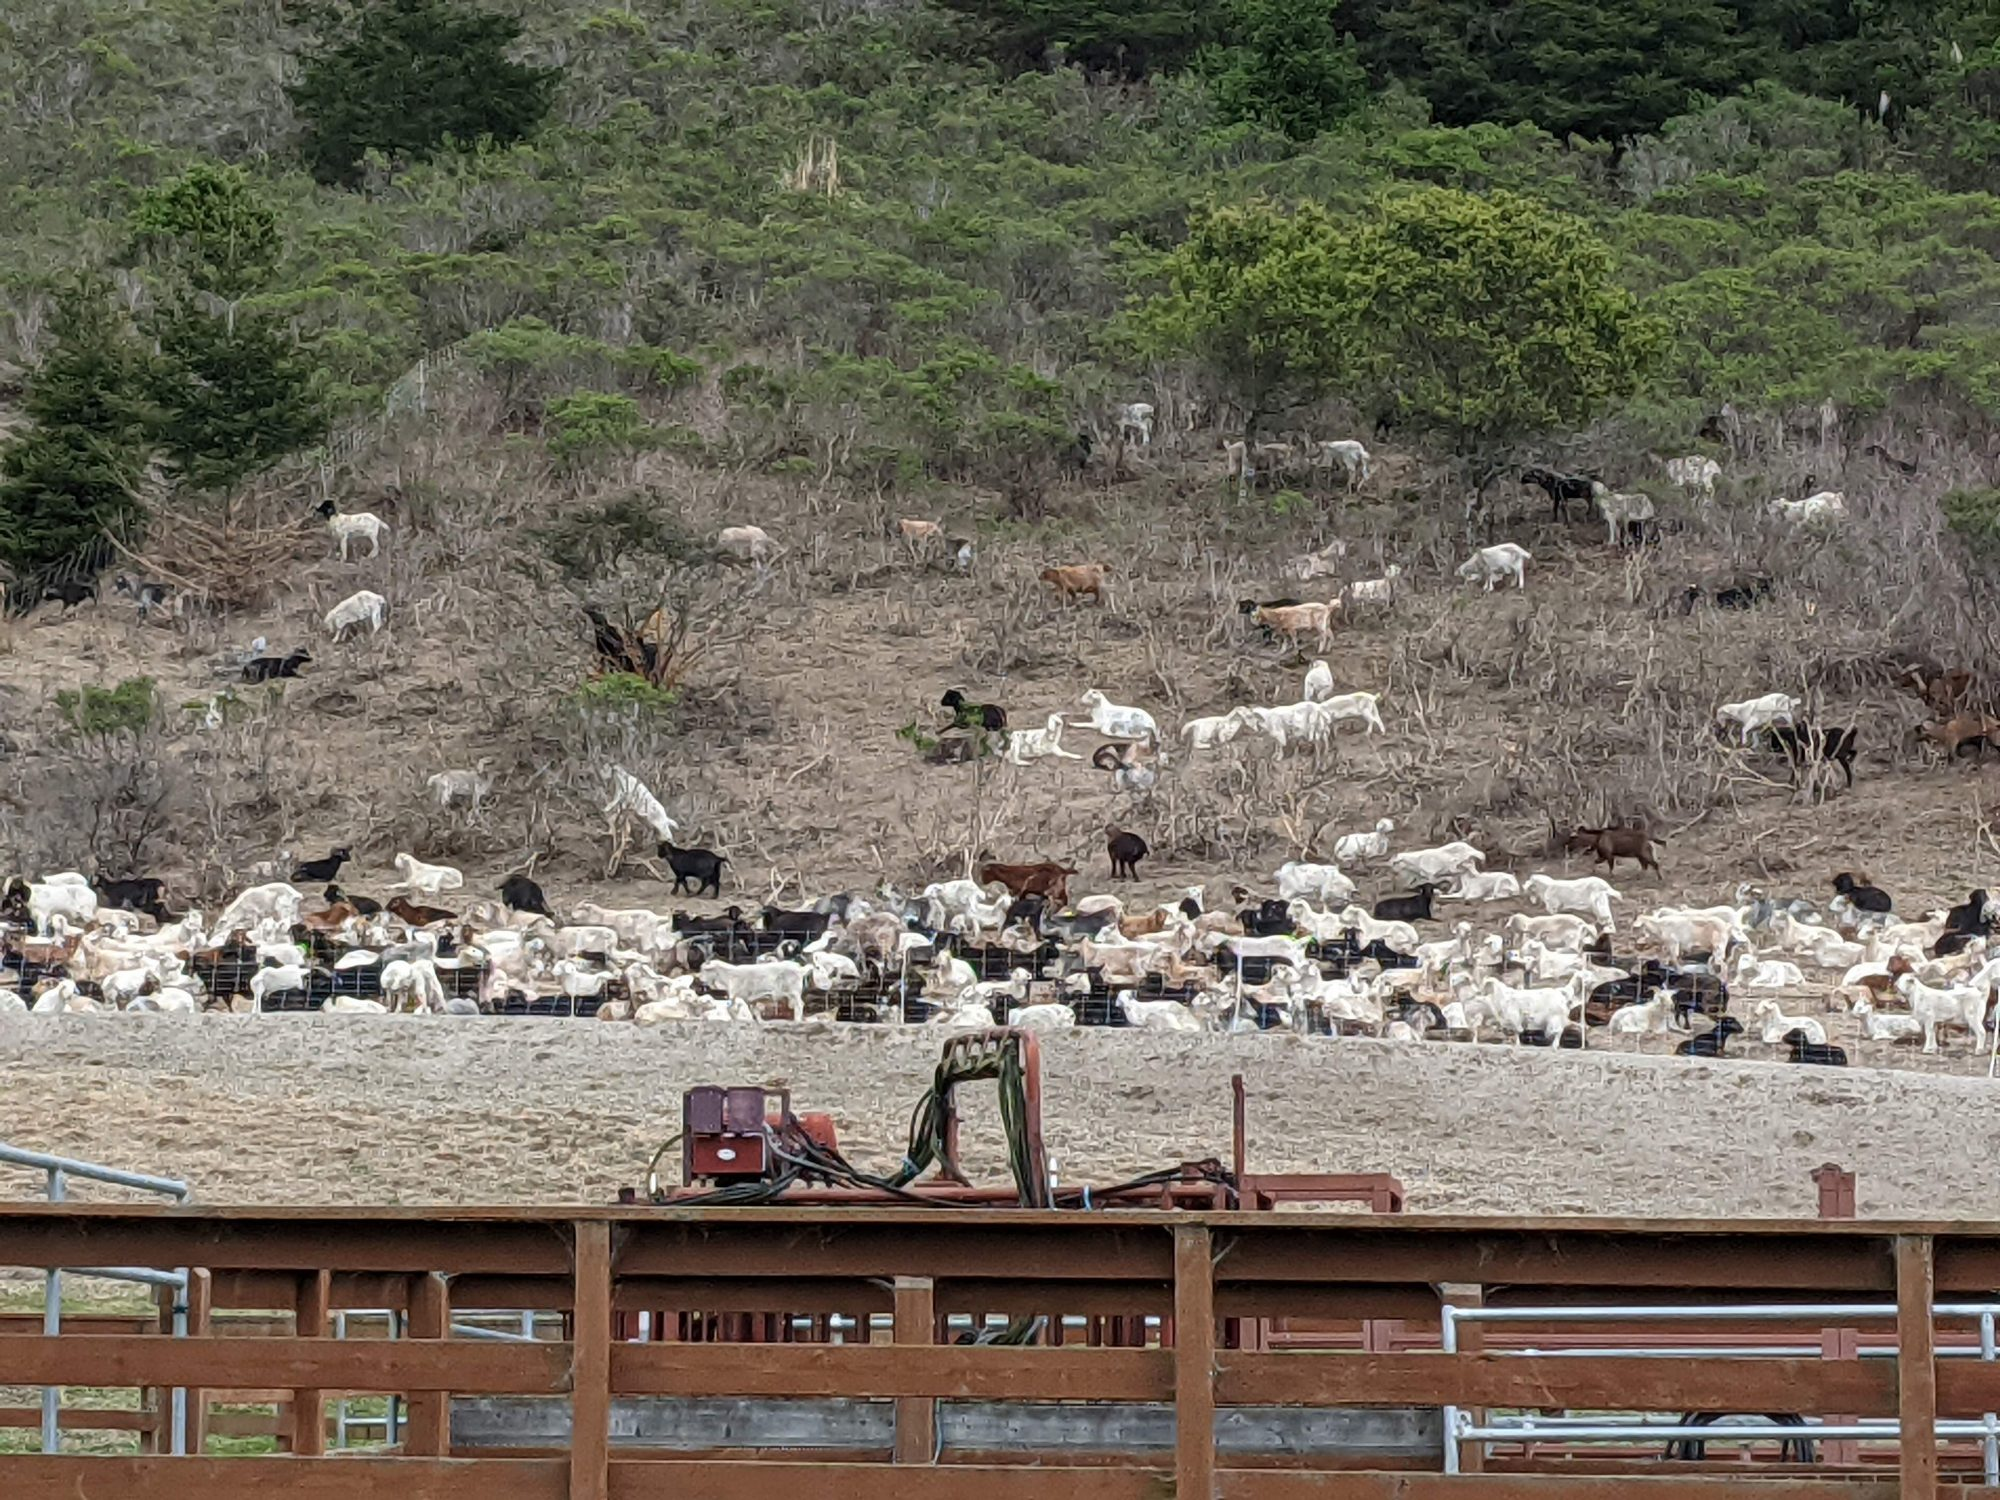 goats grazing to prevent forest fires